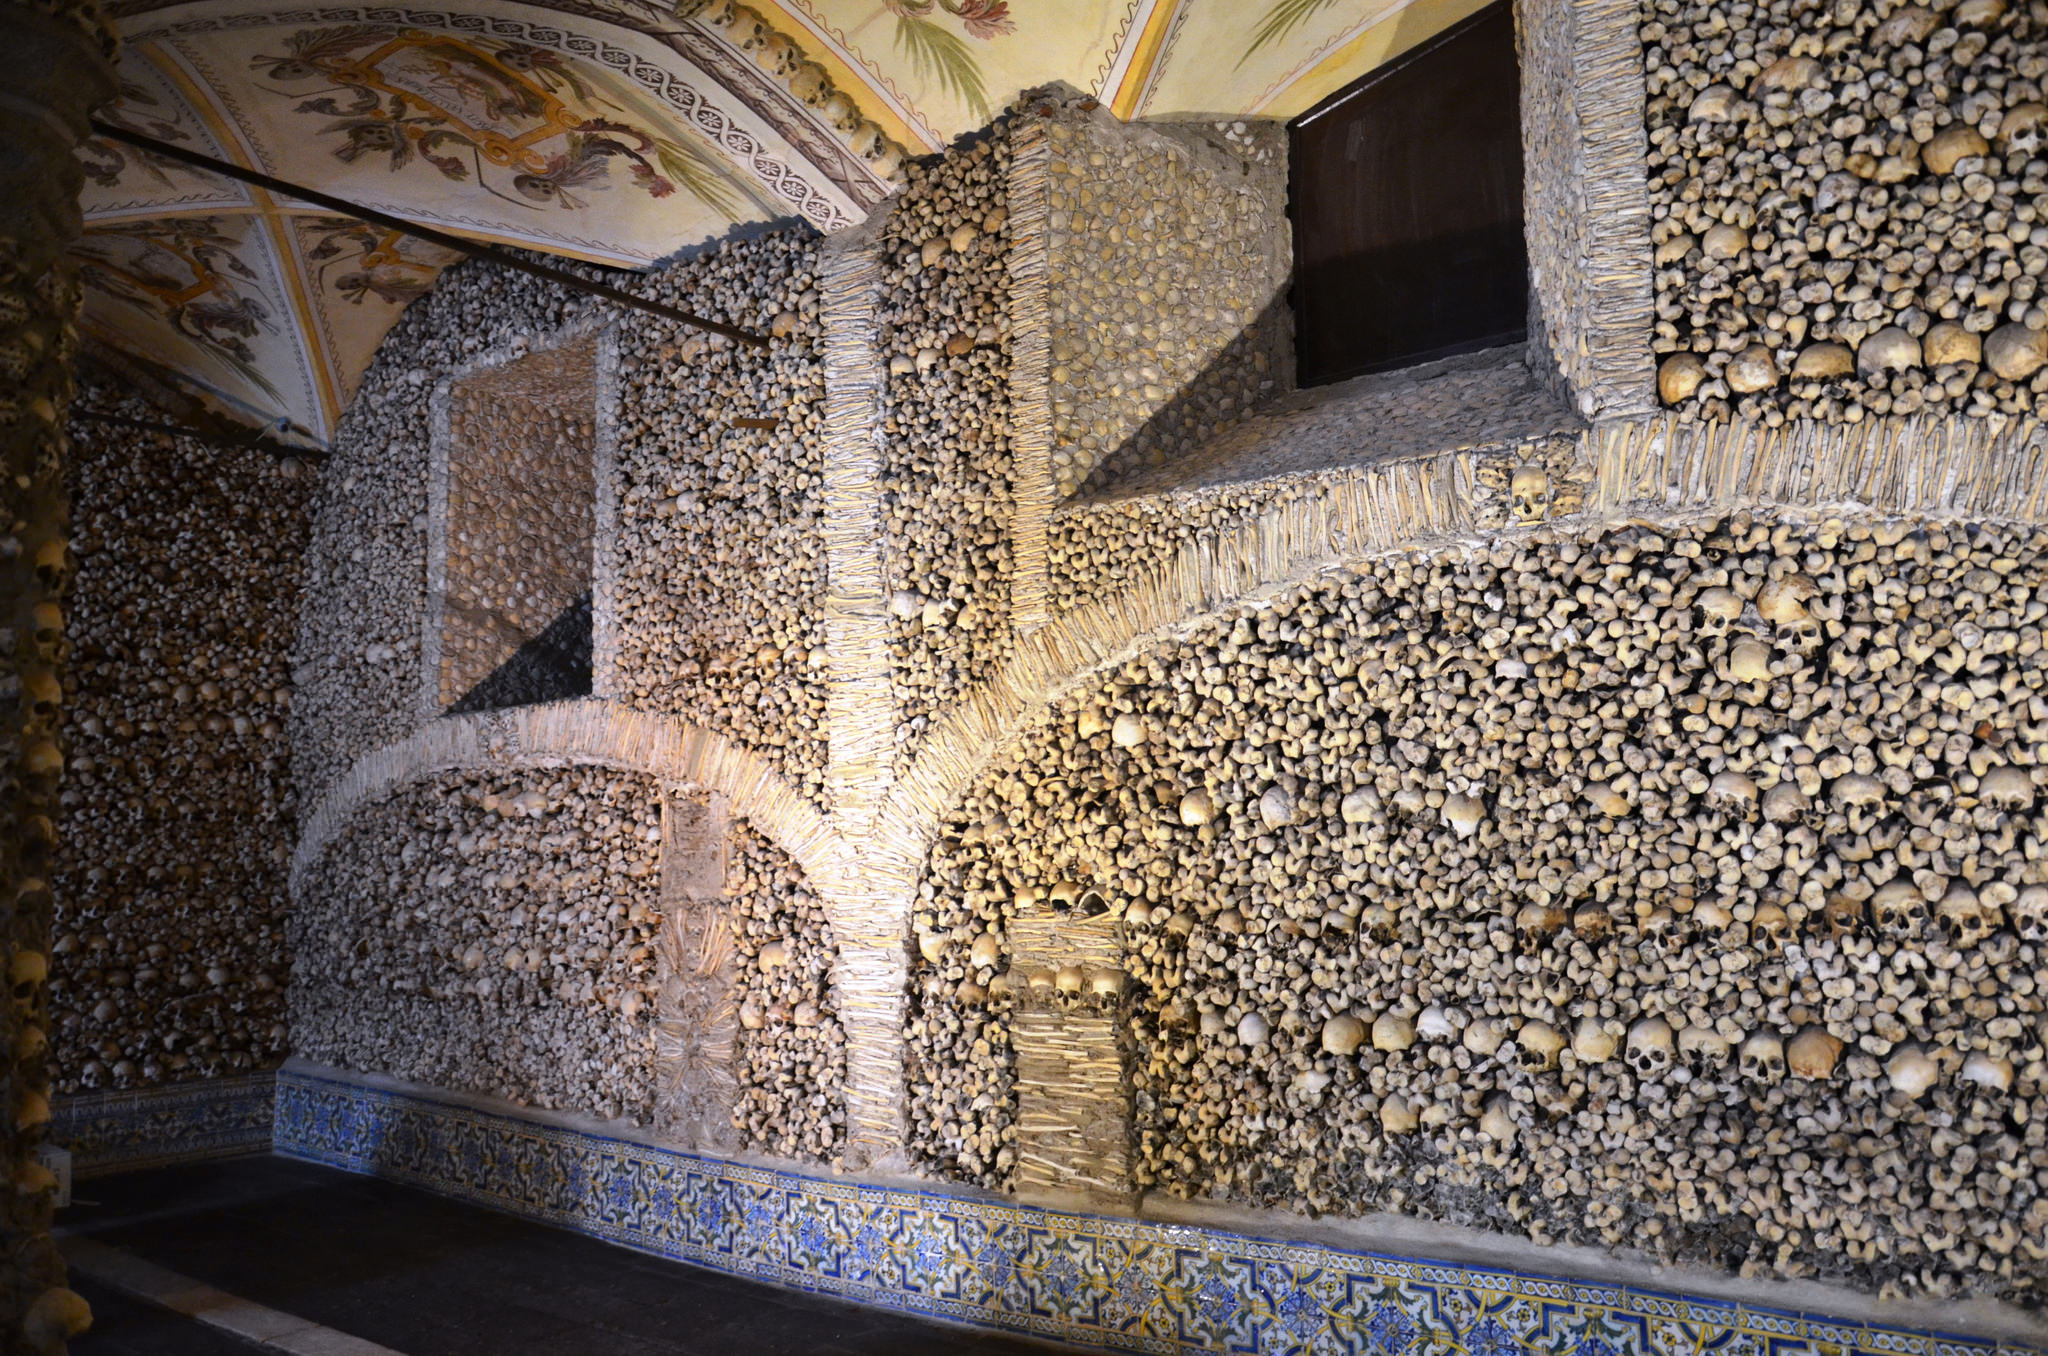 Capela dos osos, skull and bones chapel in Evora, Portugal